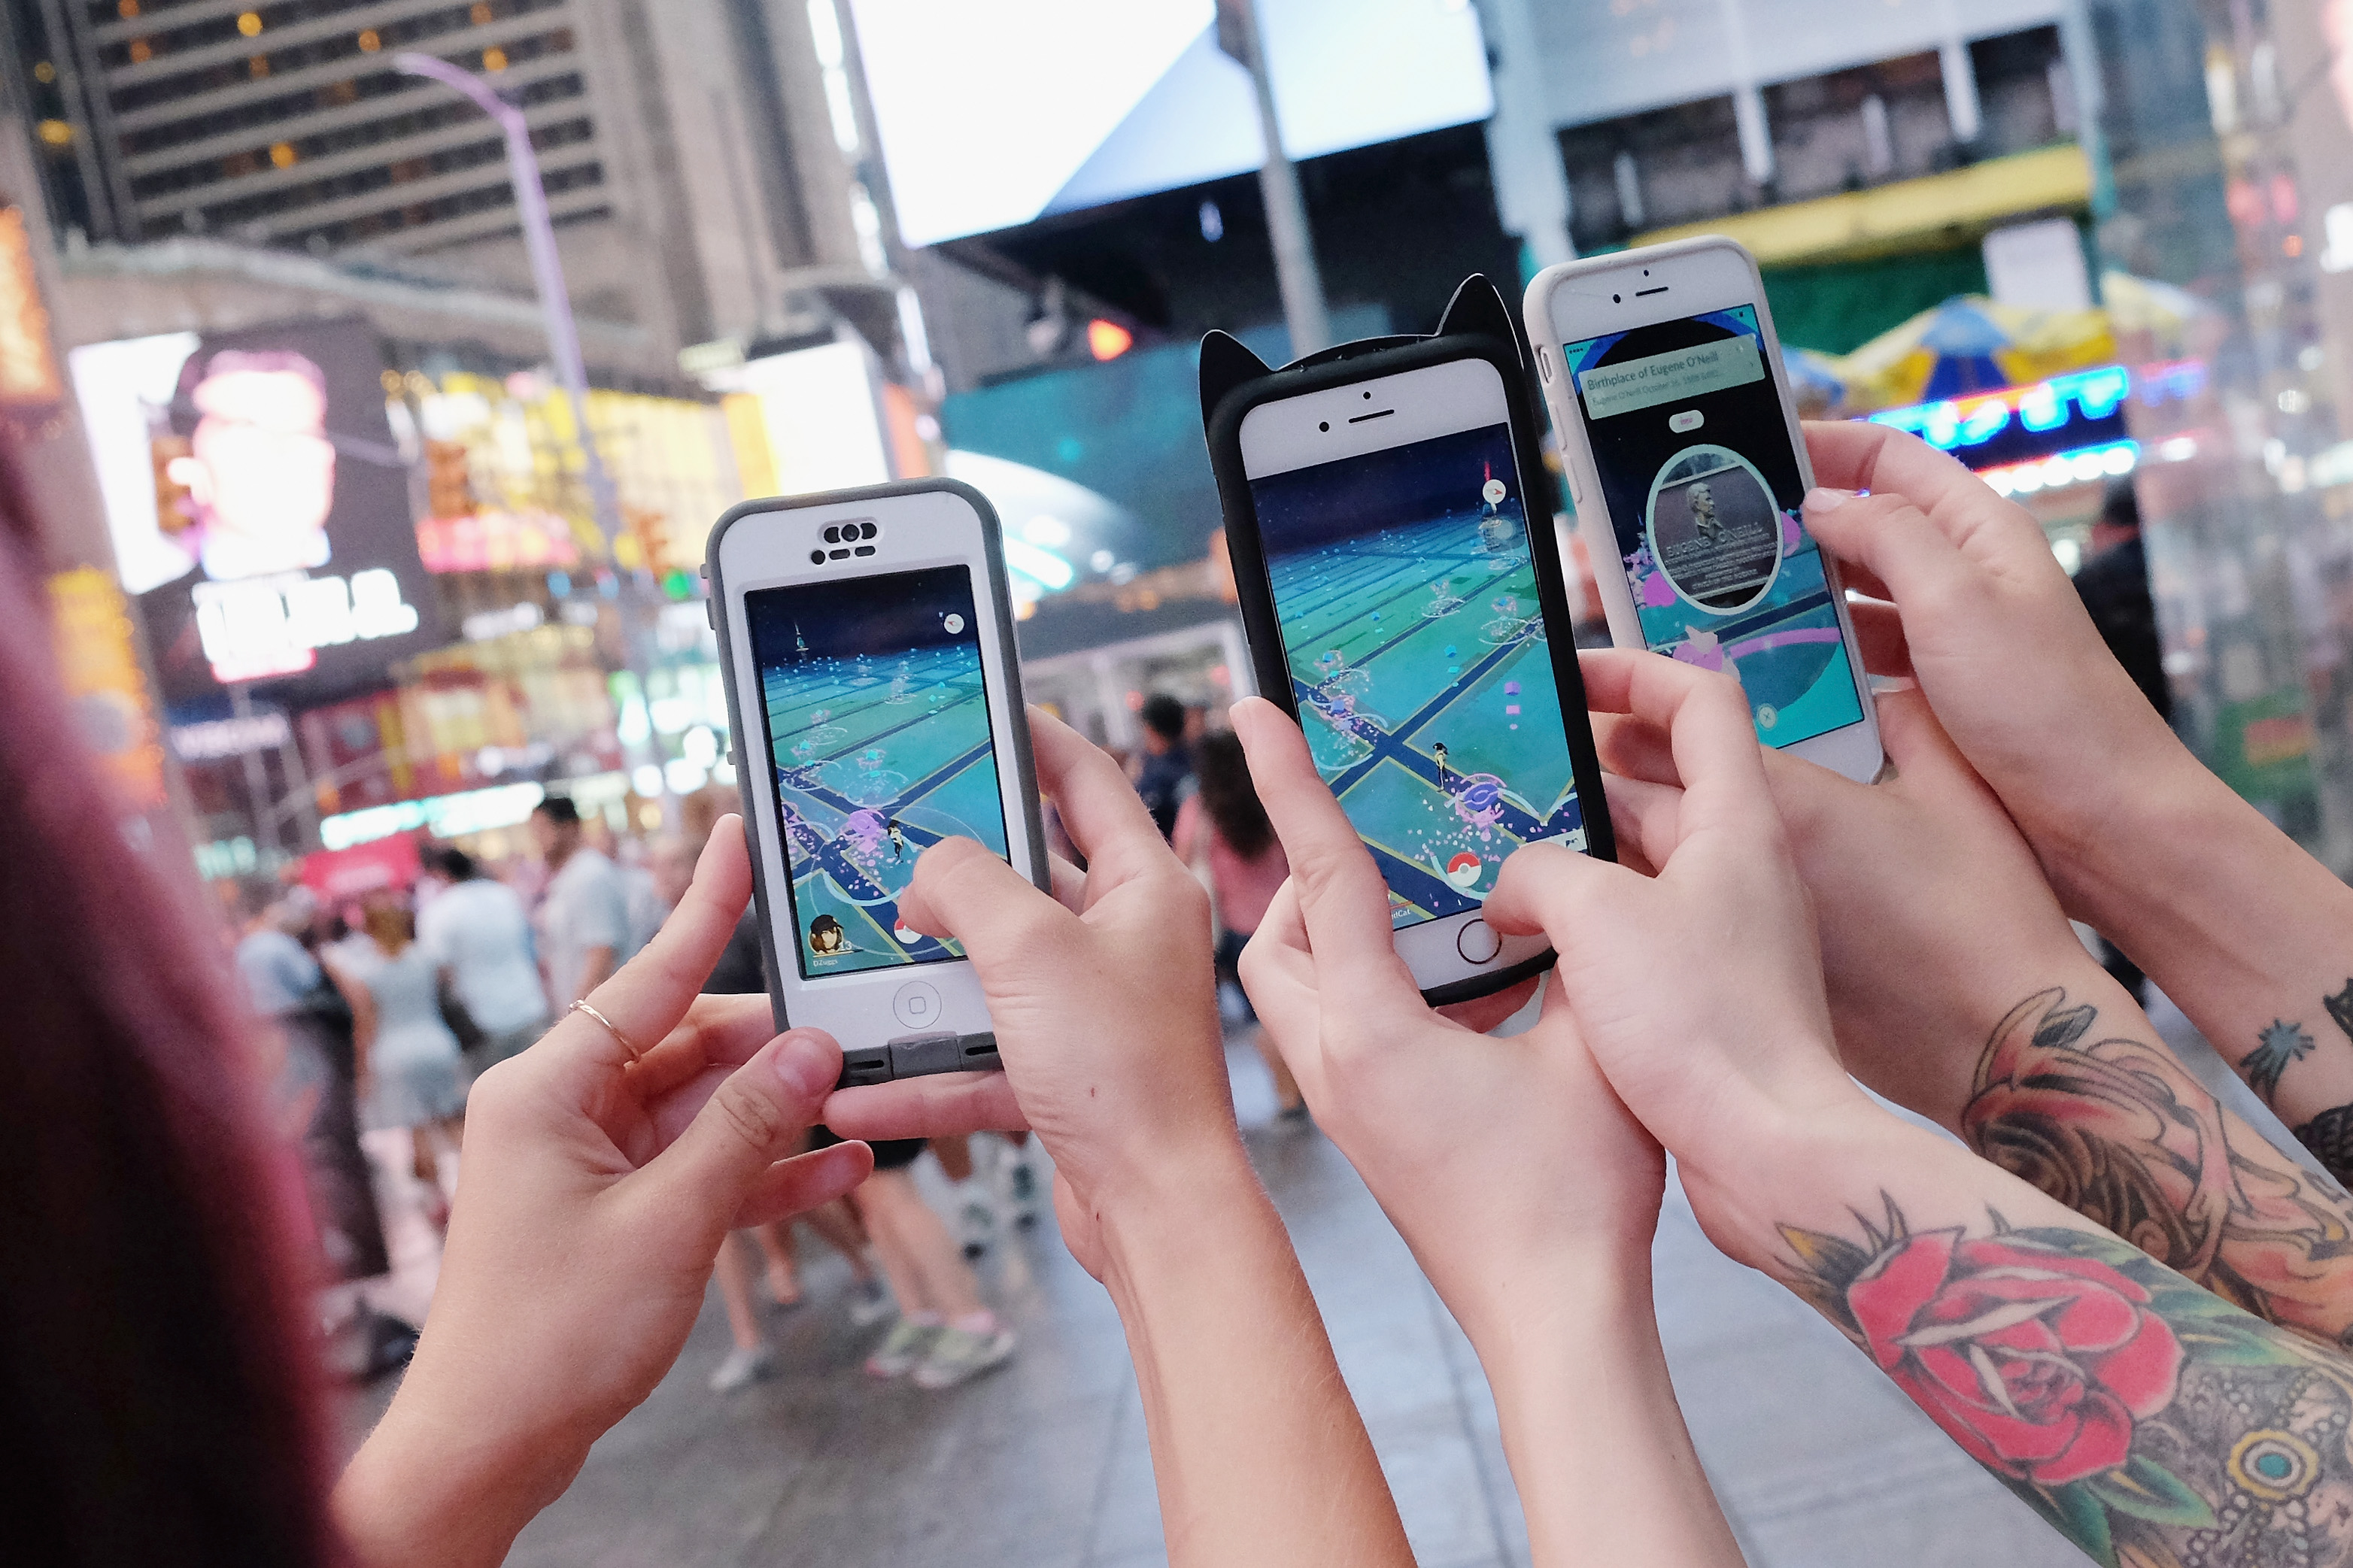 Pokémon Go's login update fixes one of the game's most annoying